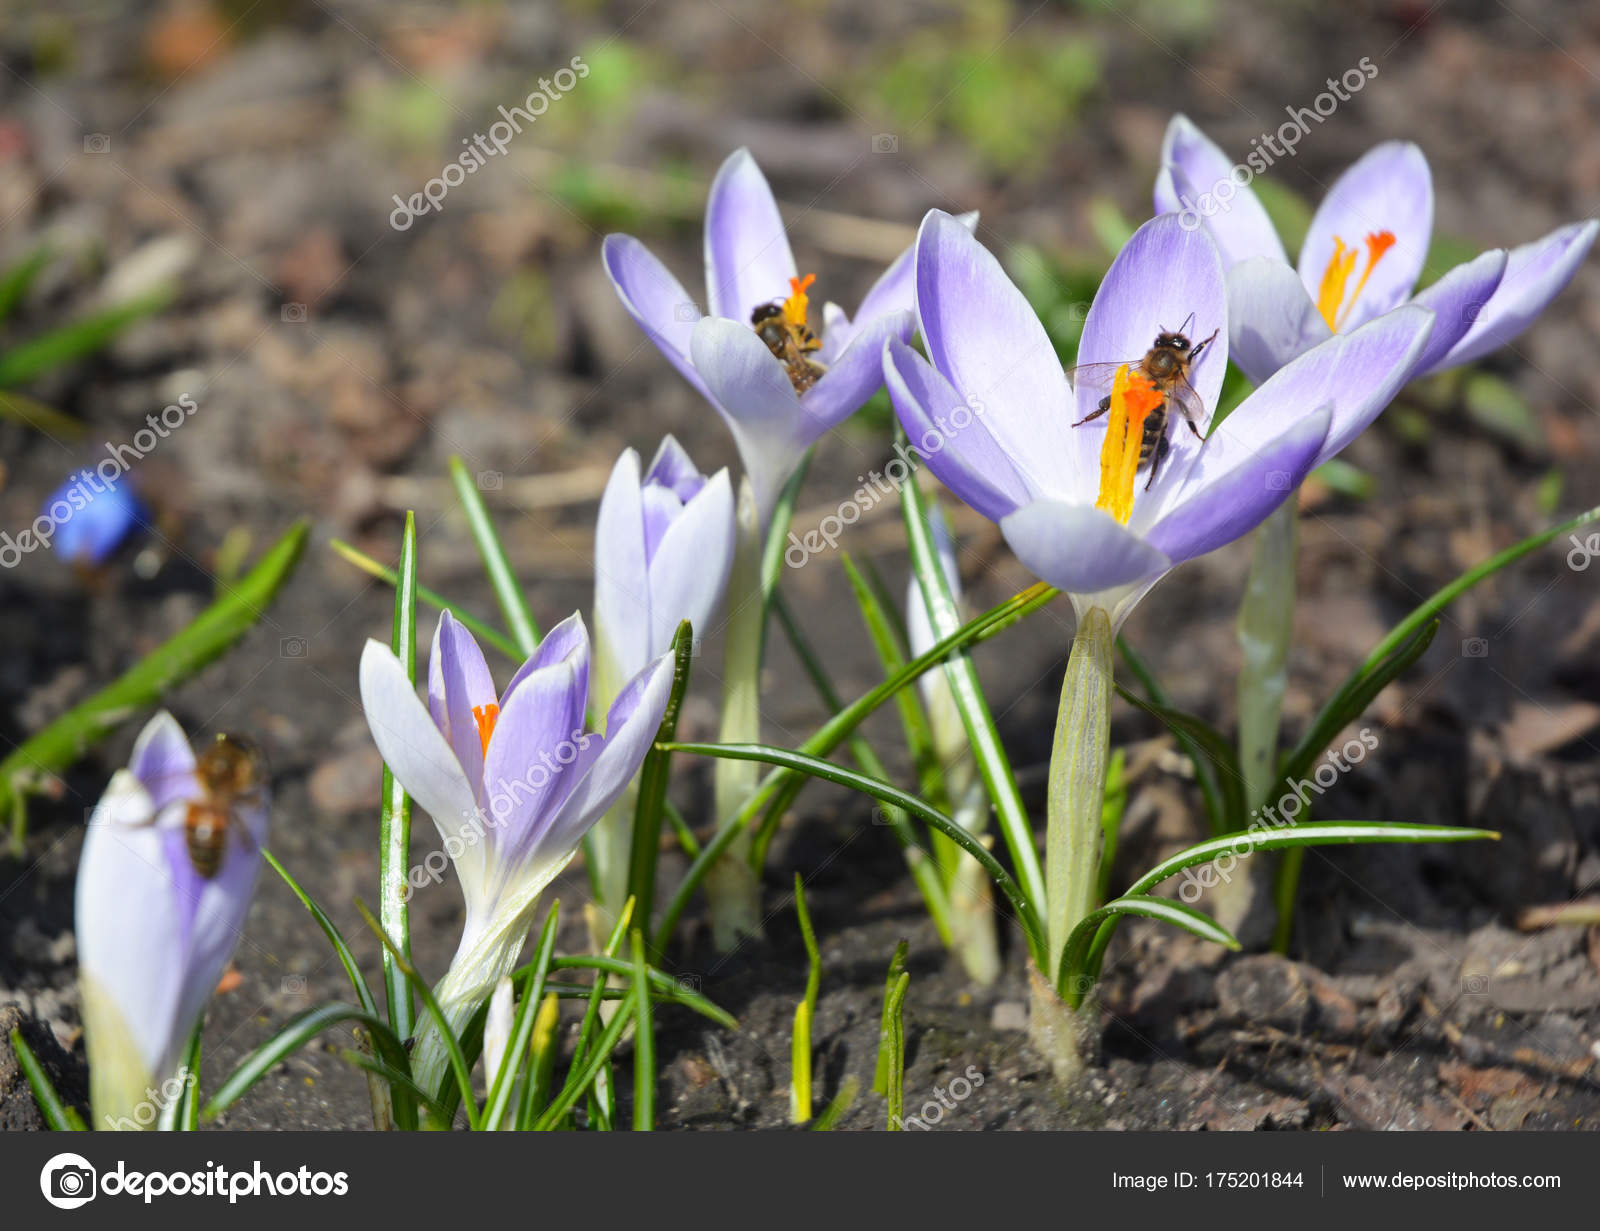 Wild Forest Spring Flowers Purple Crocus Flowers With Honey Bees